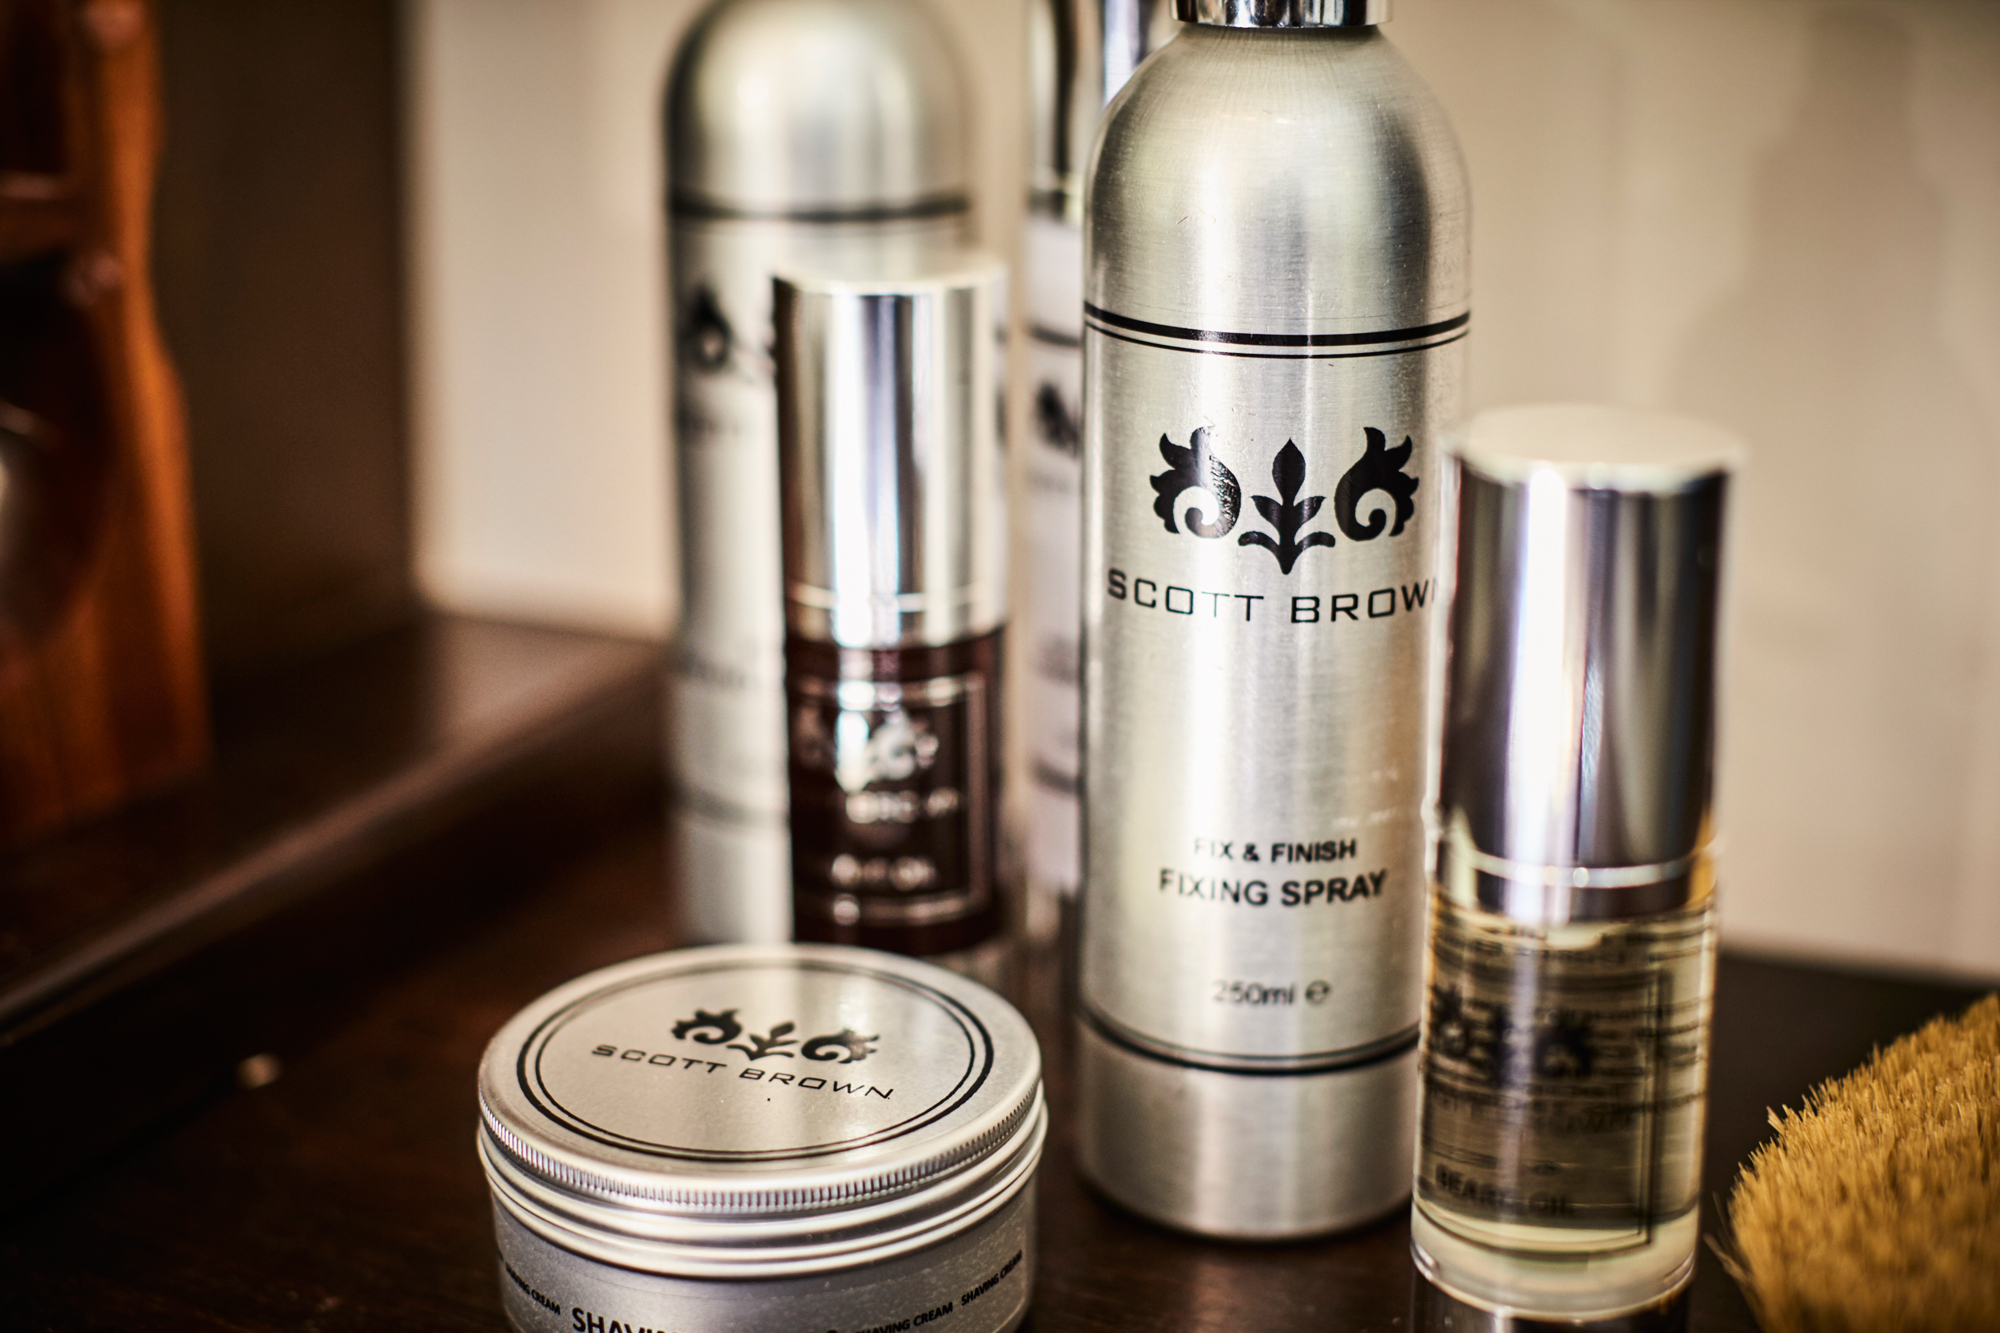 Scott Brown Men's Grooming products used in salons and health clubs too